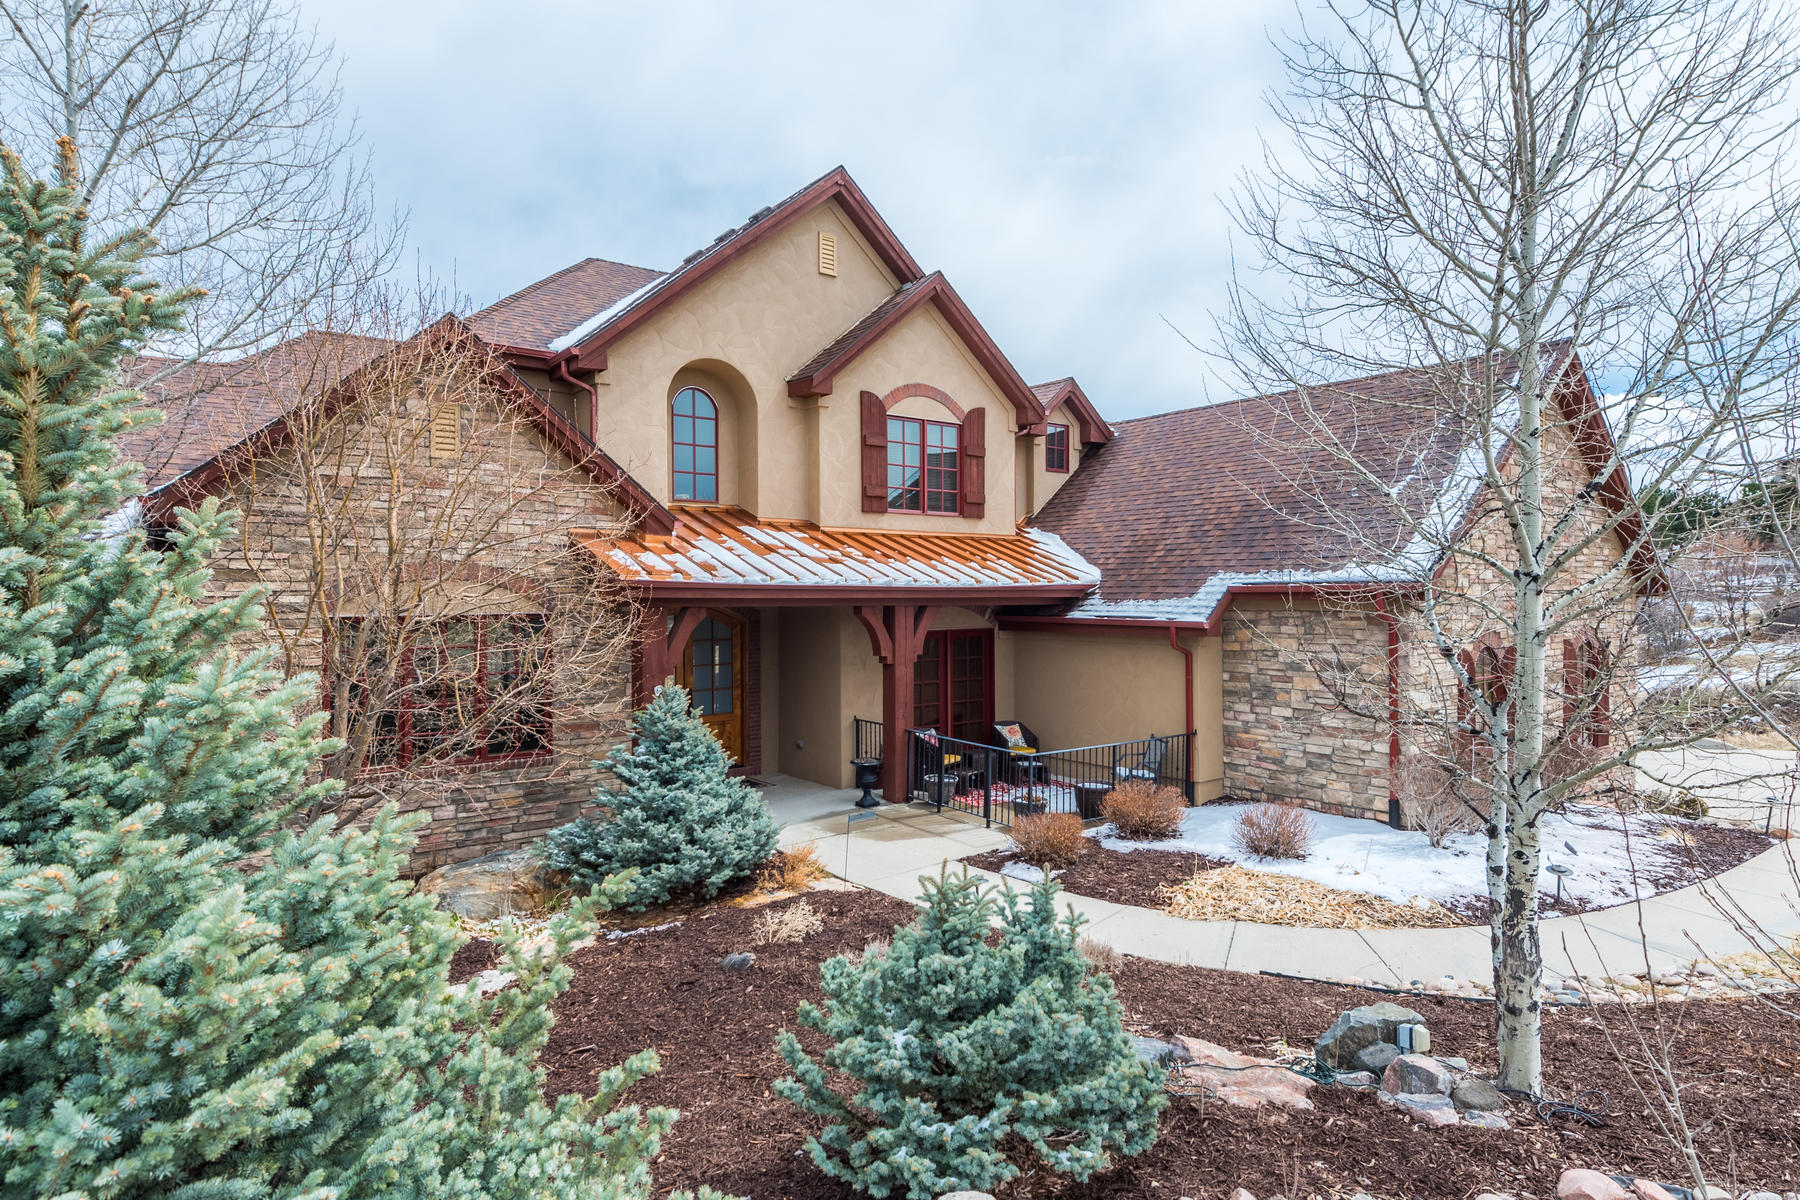 Single Family Home for Active at Beautiful Custom Home Located On A Private Treed Lot Backing To Open Space 5170 Morningside Way Parker, Colorado 80134 United States